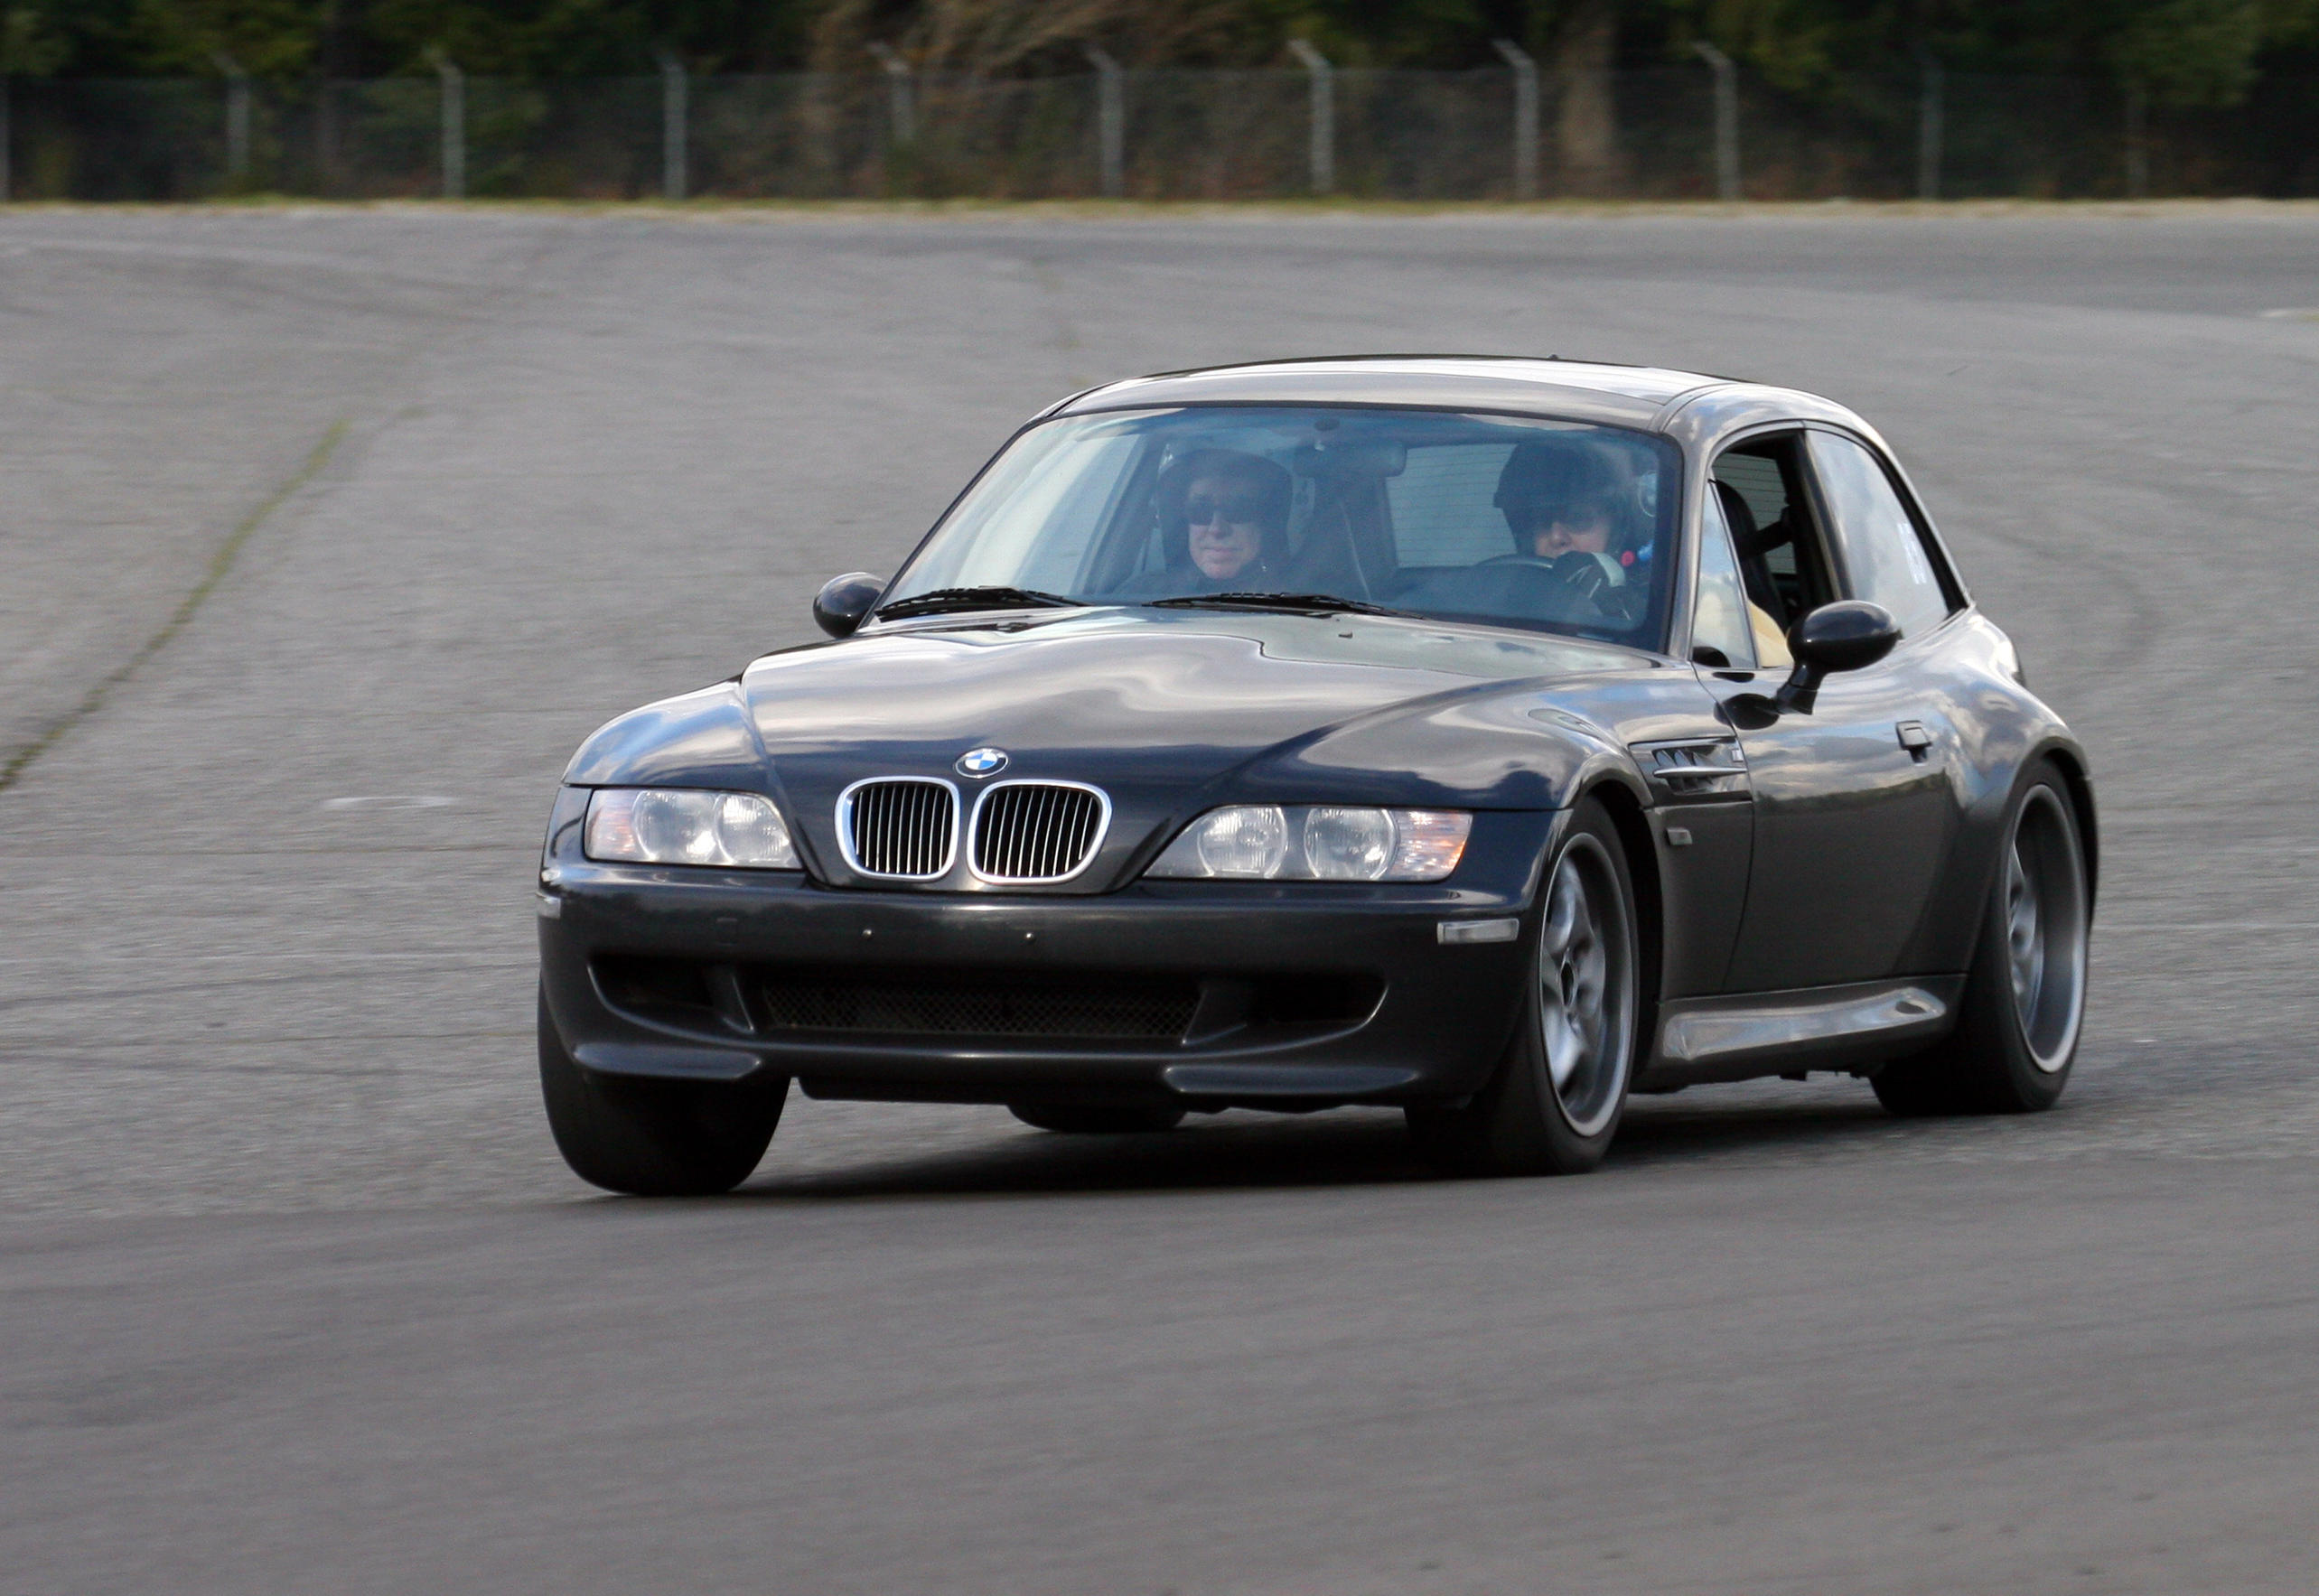 Cars bmw z3 m coupe 2000 #6